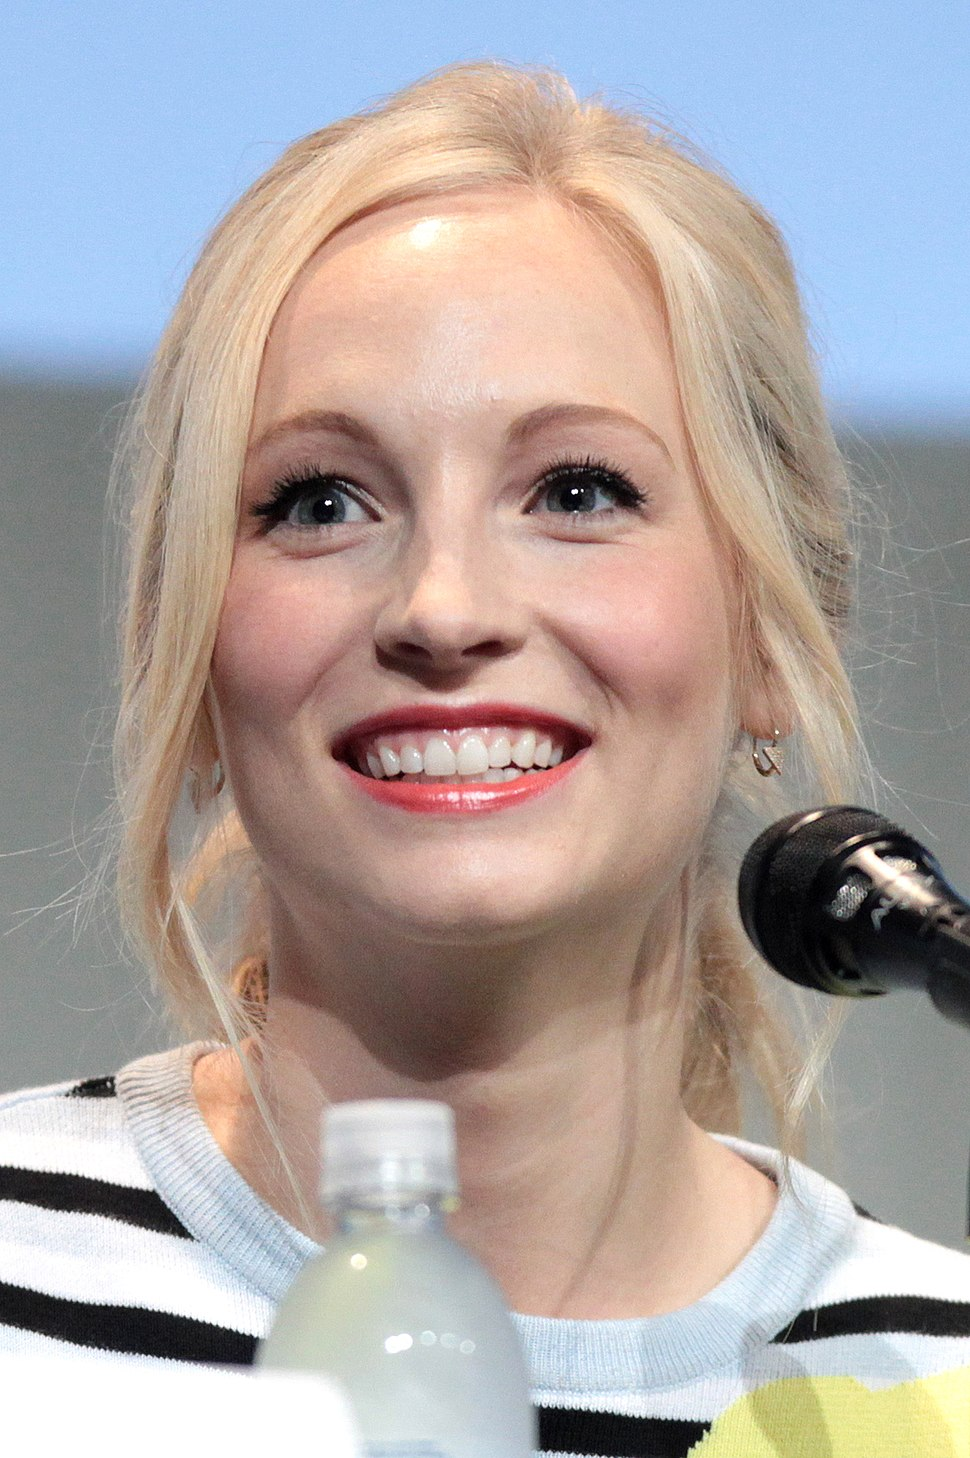 Candice Accola by Gage Skidmore 2